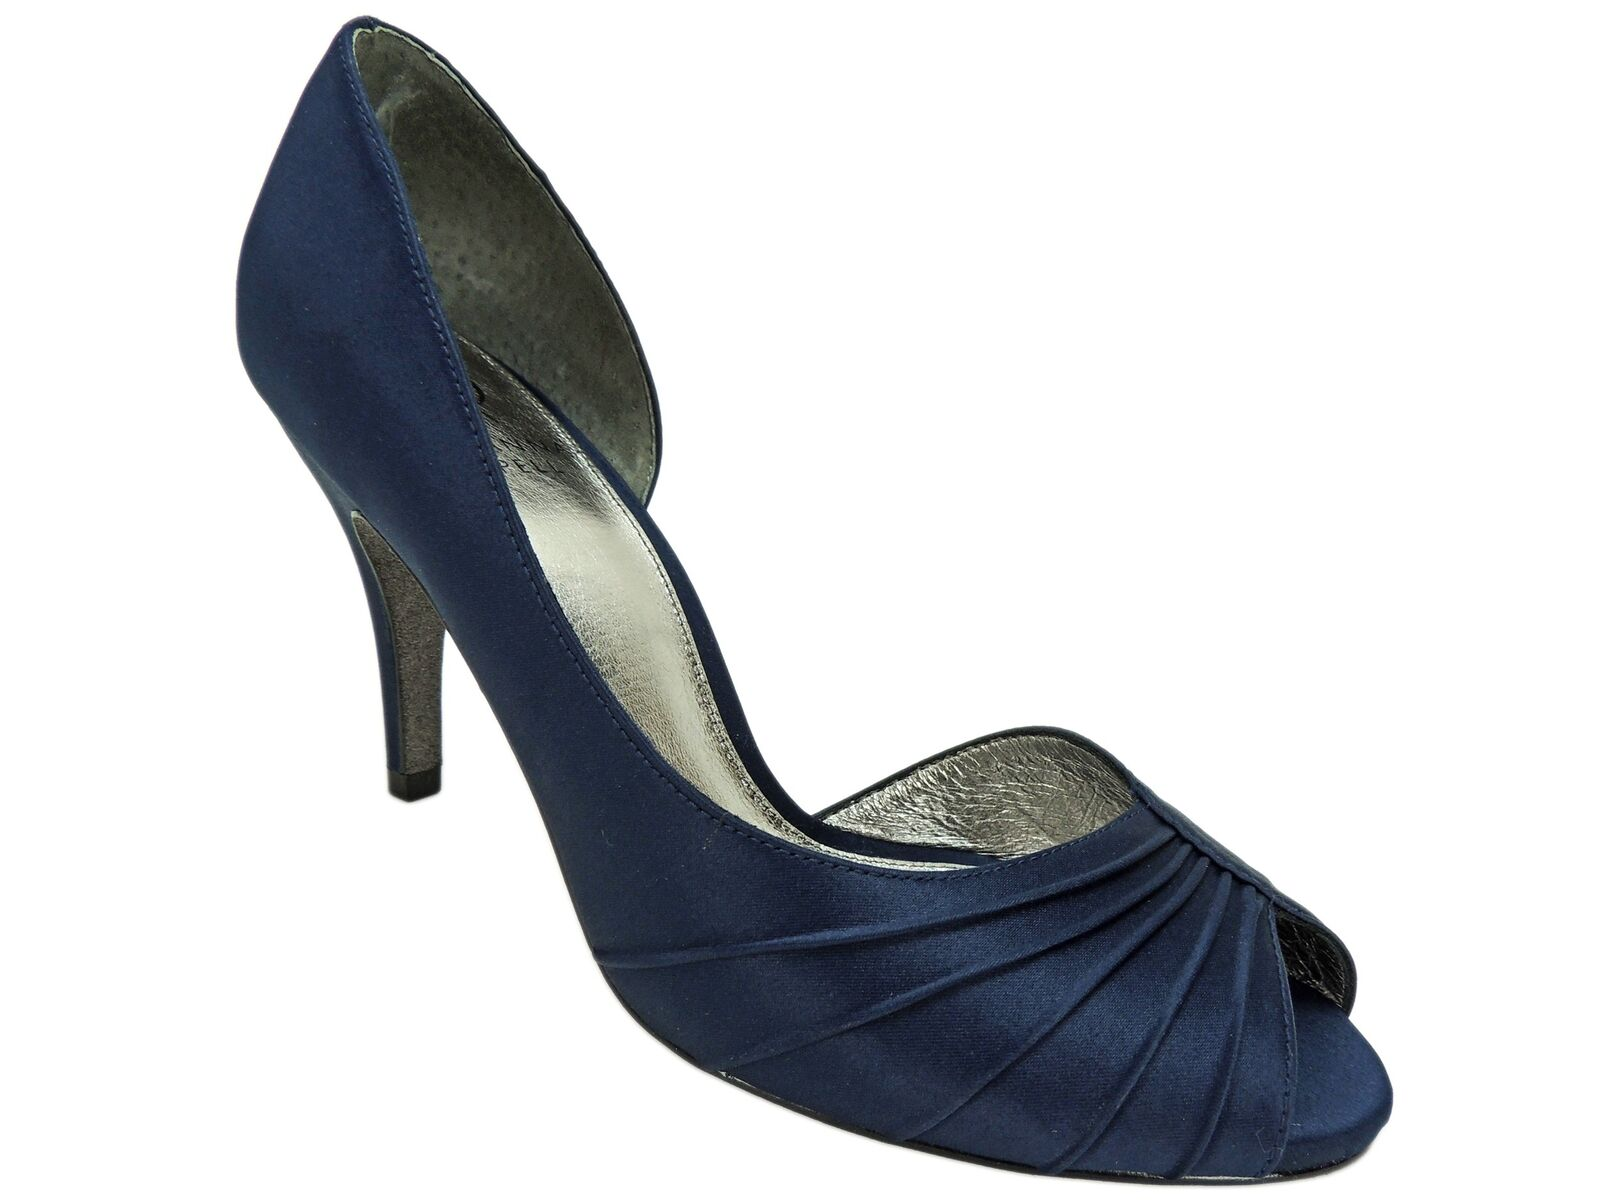 Adrianna Papell Women's Flynn d'Orsay Pumps Navy Size 8 M